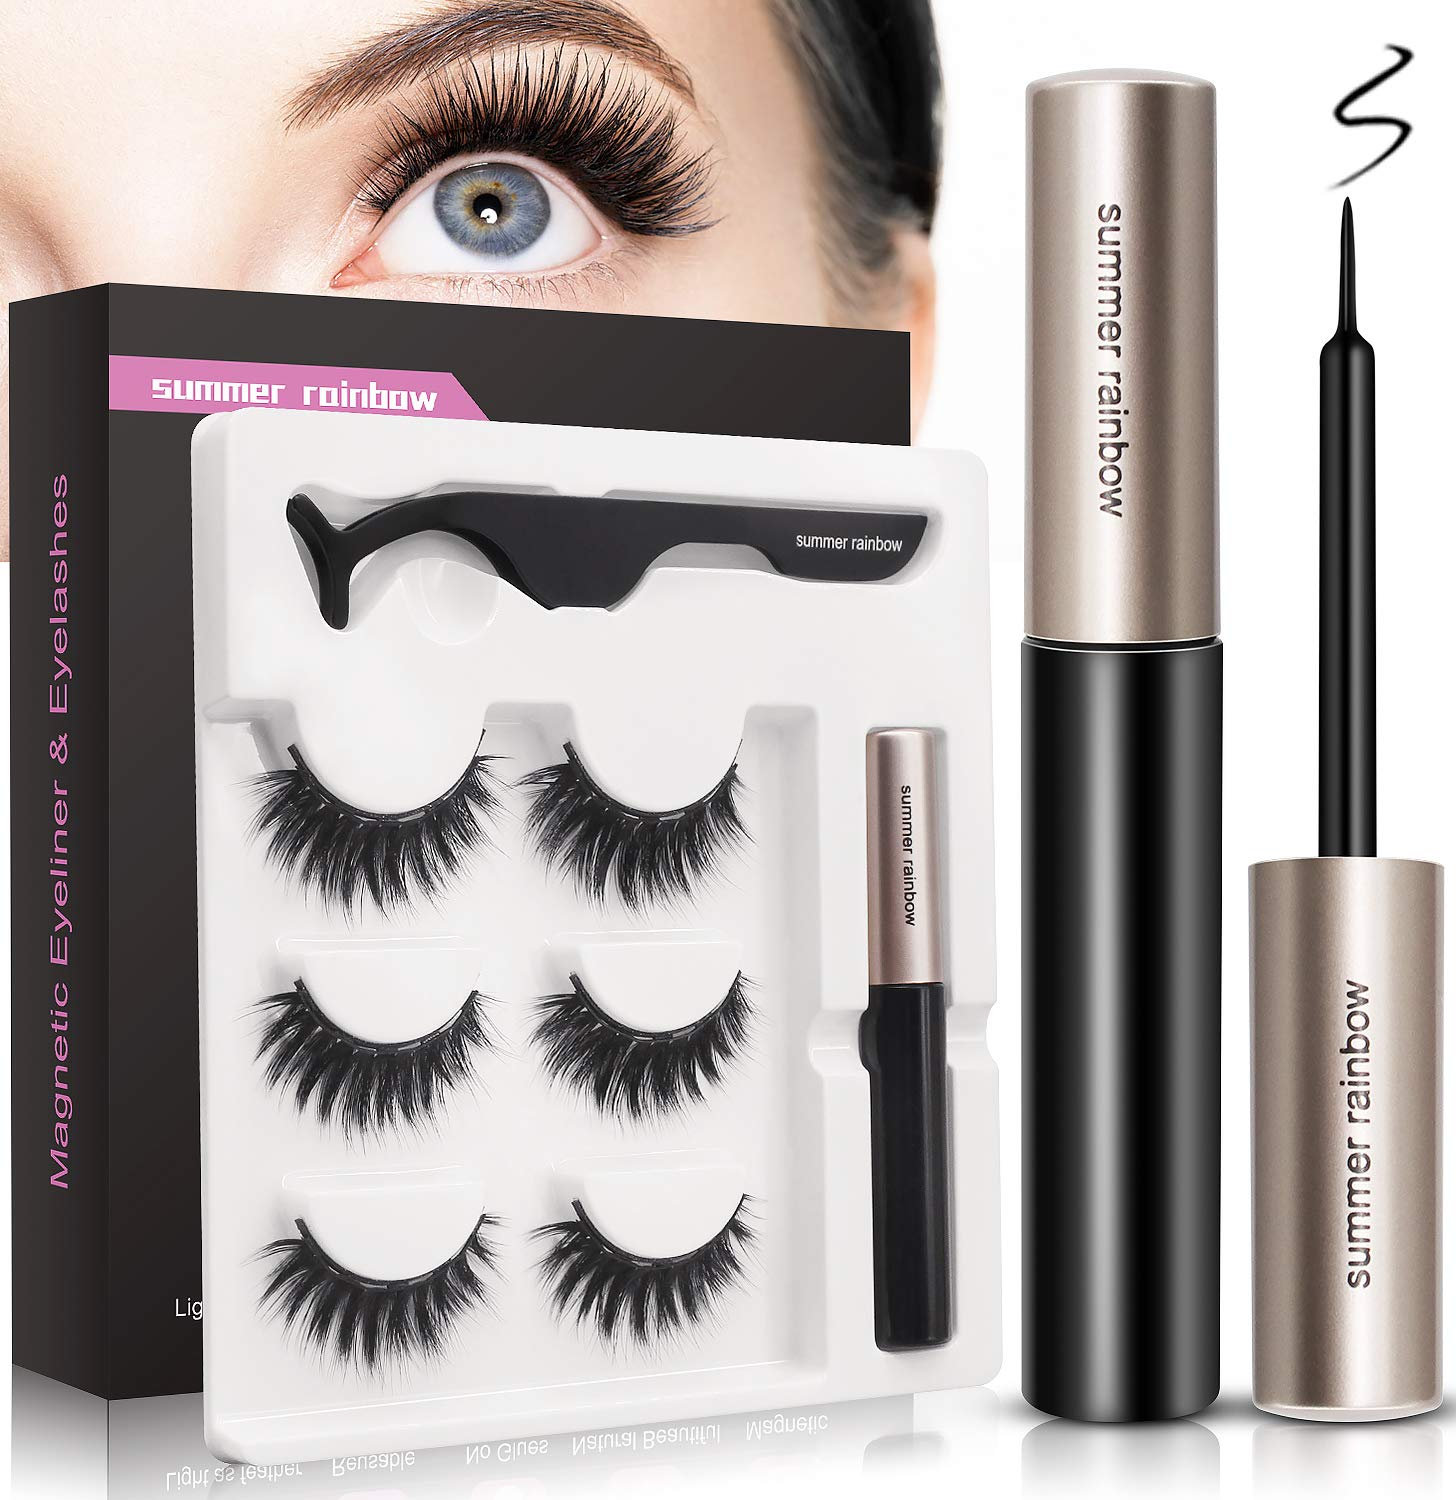 Magnetic Eyeliner and Magnetic Eyelash Kit, Natural Look, Waterproof and Smudge Resistant, Magnetic Lashliner for Use with Magnetic False Lashes (3 Pairs)